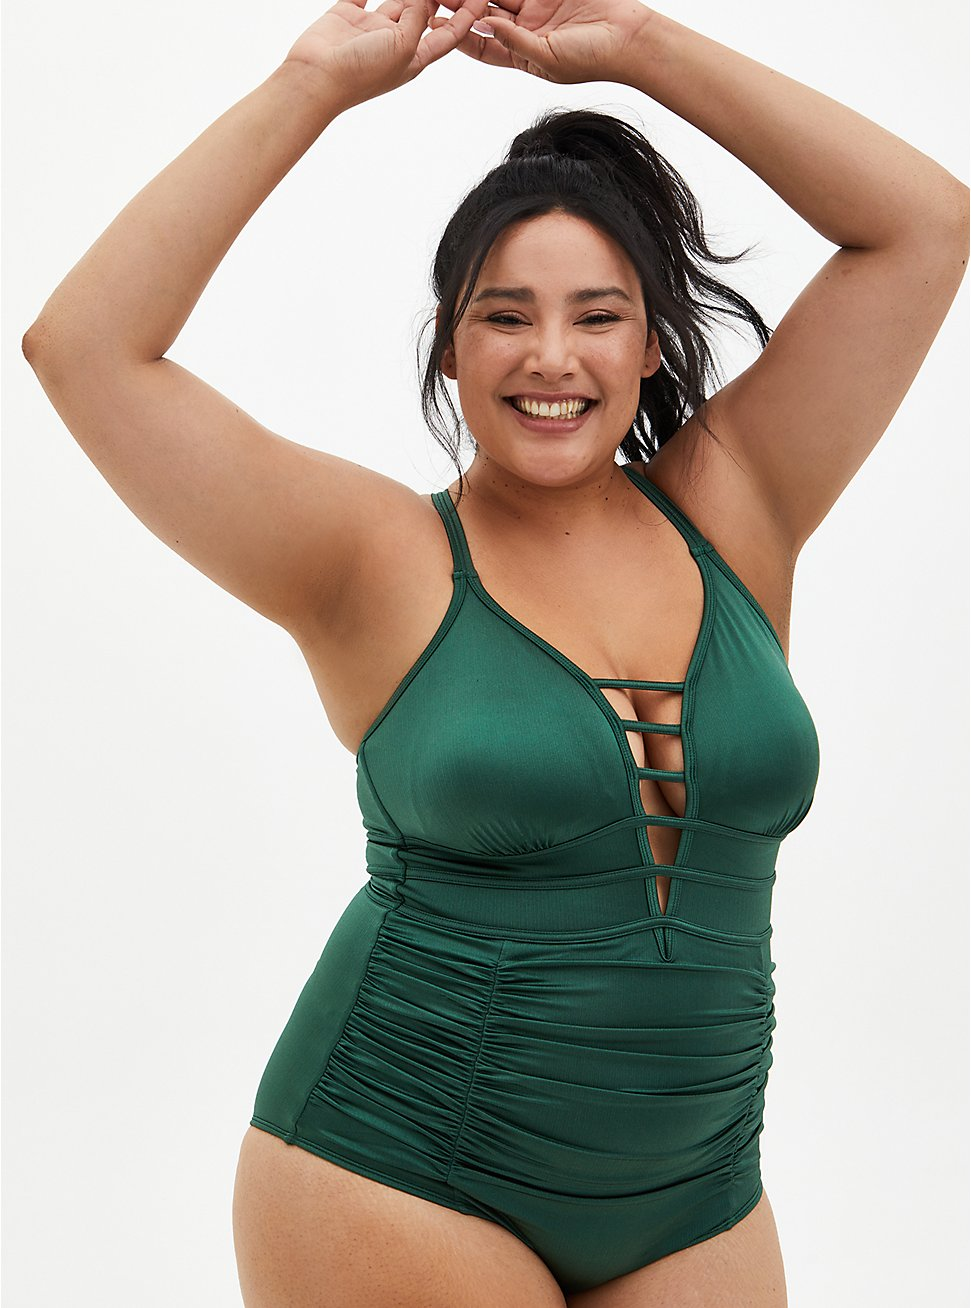 Olive Shine Strappy One-Piece Swimsuit, OLIVE, hi-res